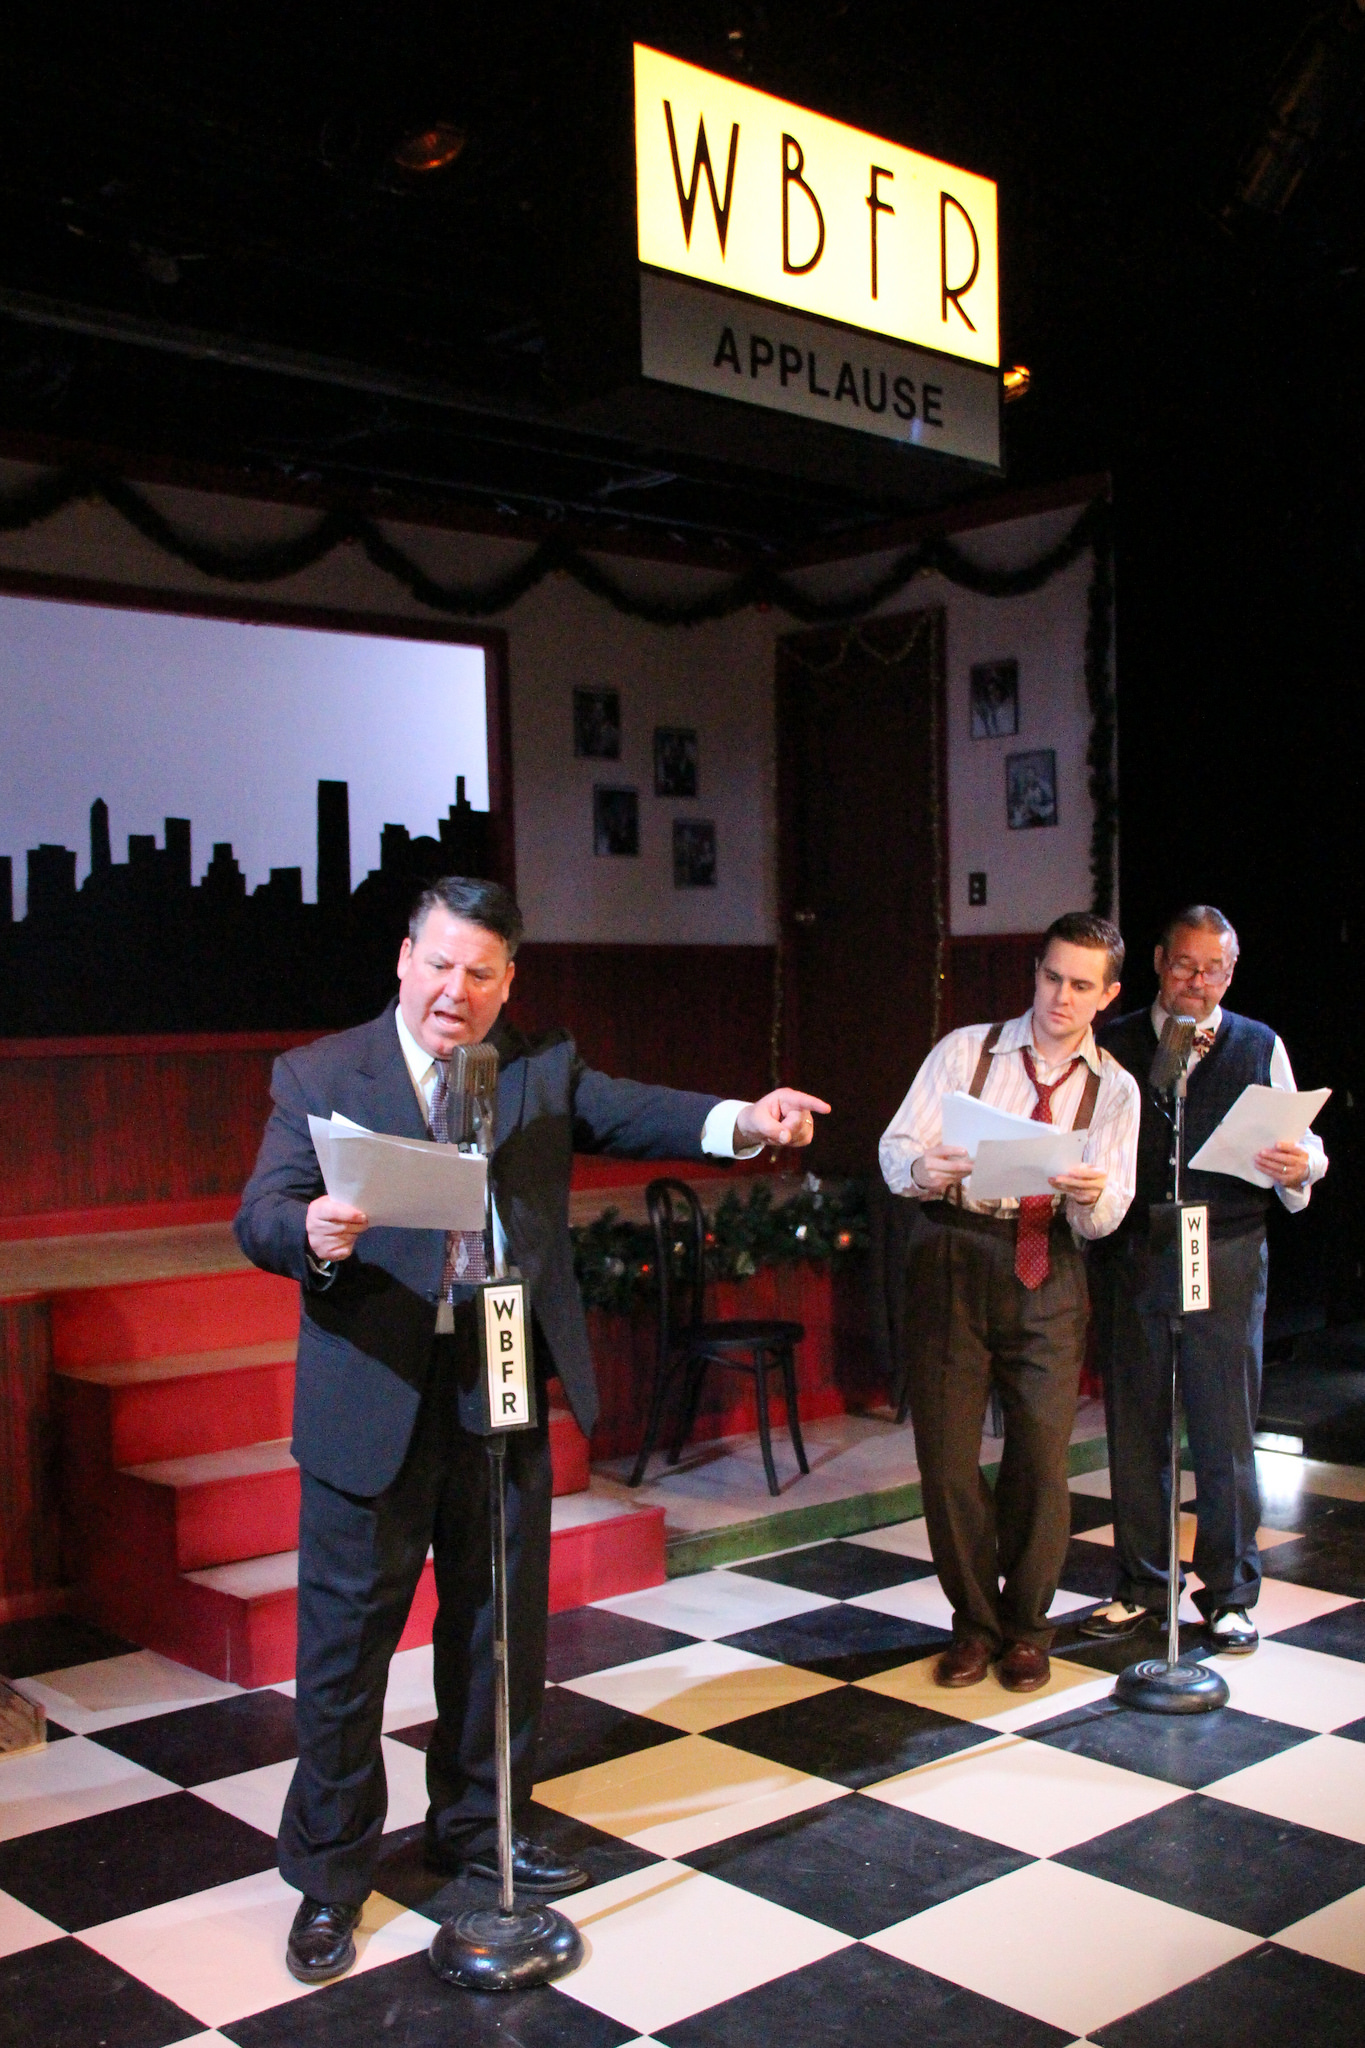 Freddie Filmore (Allan Zeller), Jake Laurents (Jon-Michael Miller), Harry Heywood (Jim Schilling)